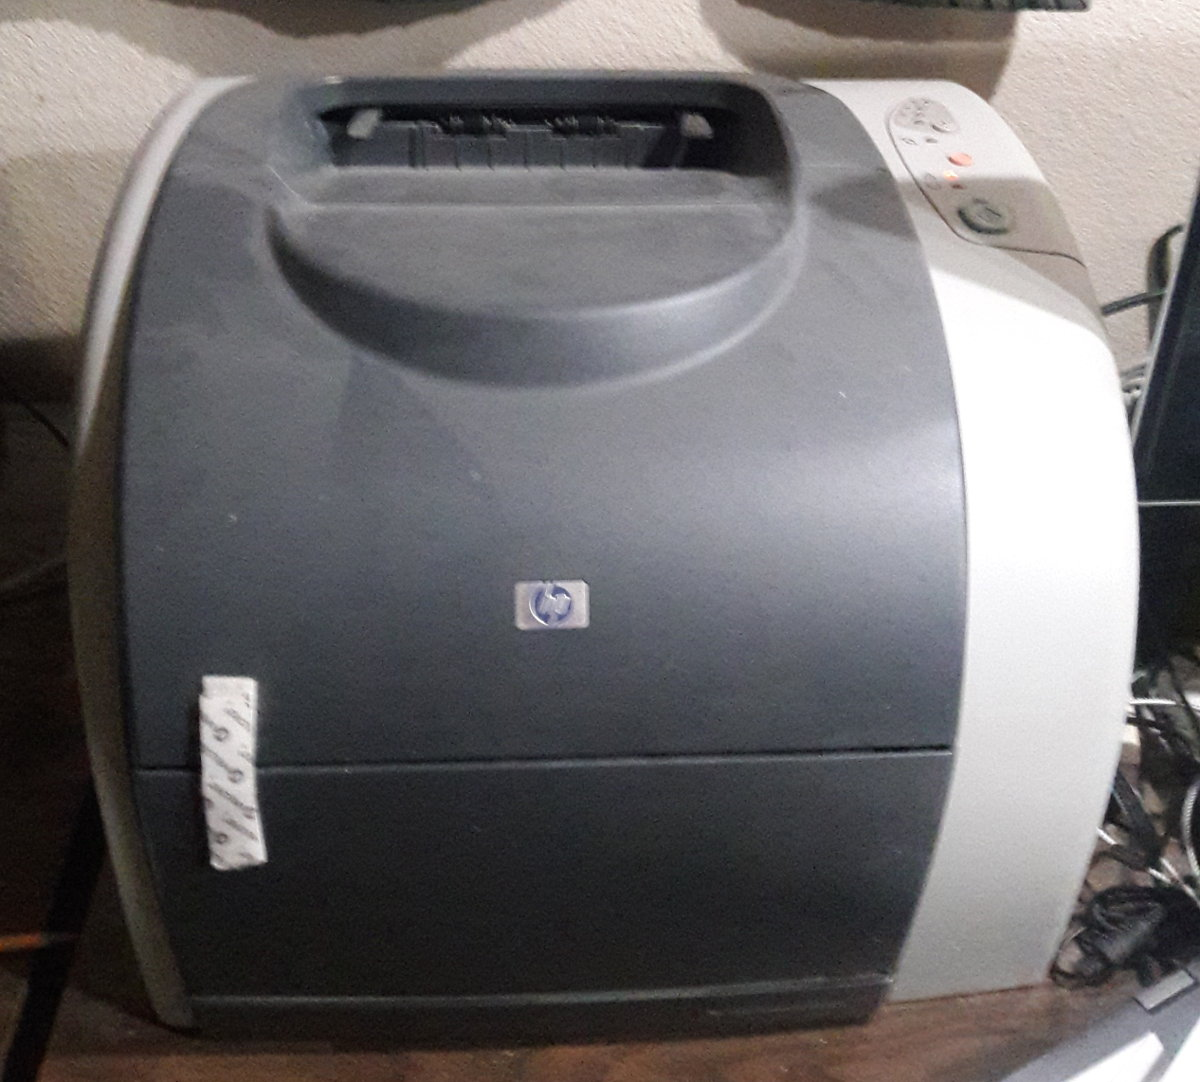 Here is a picture of my old LaserJet 2550L which I use as a black & white printer.